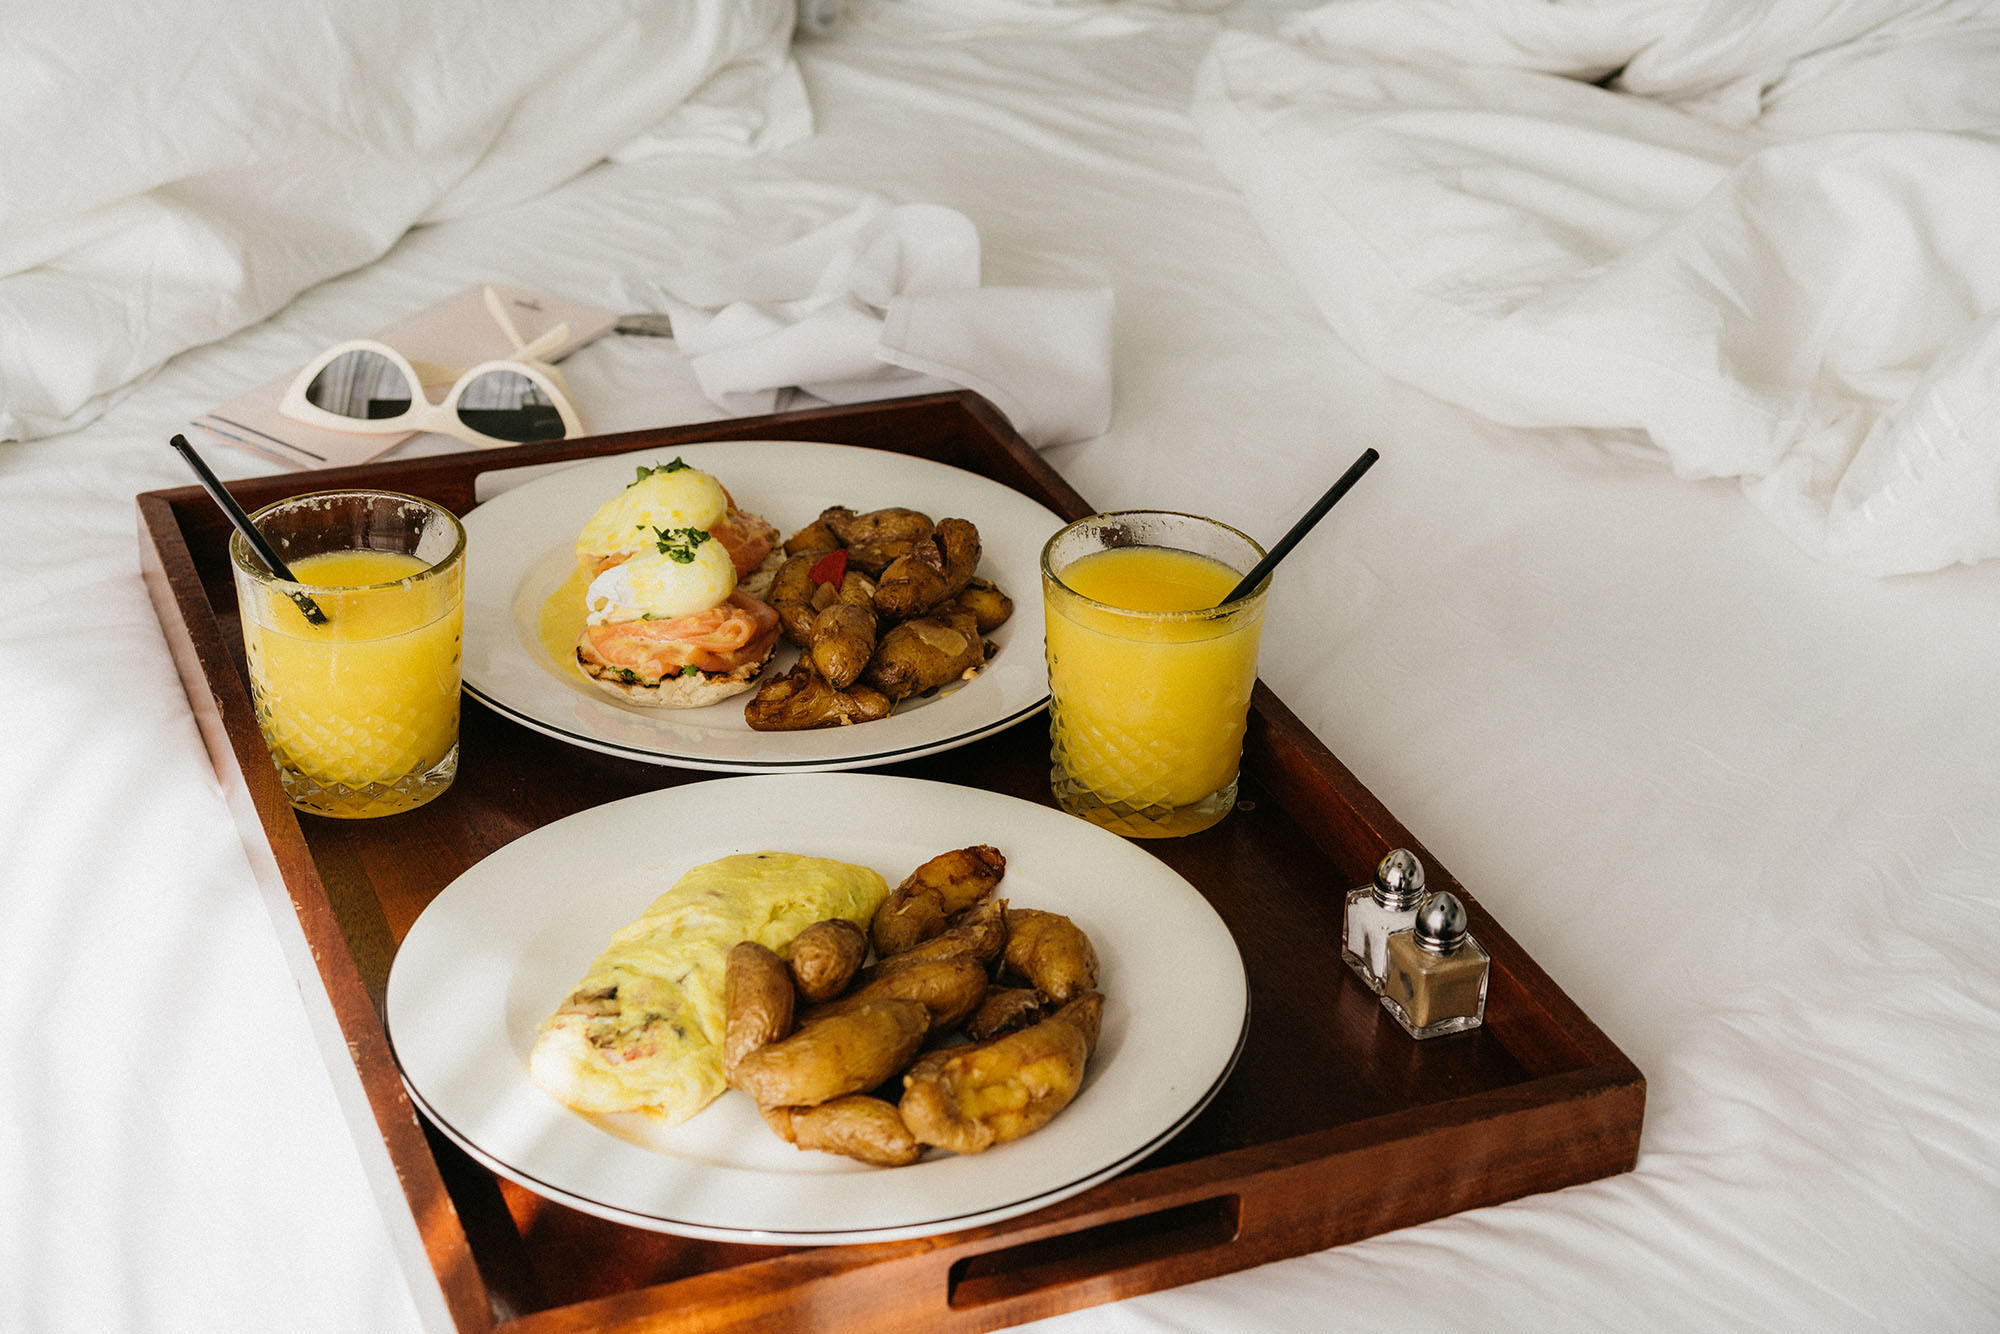 Simple breakfast in bed to start the day!